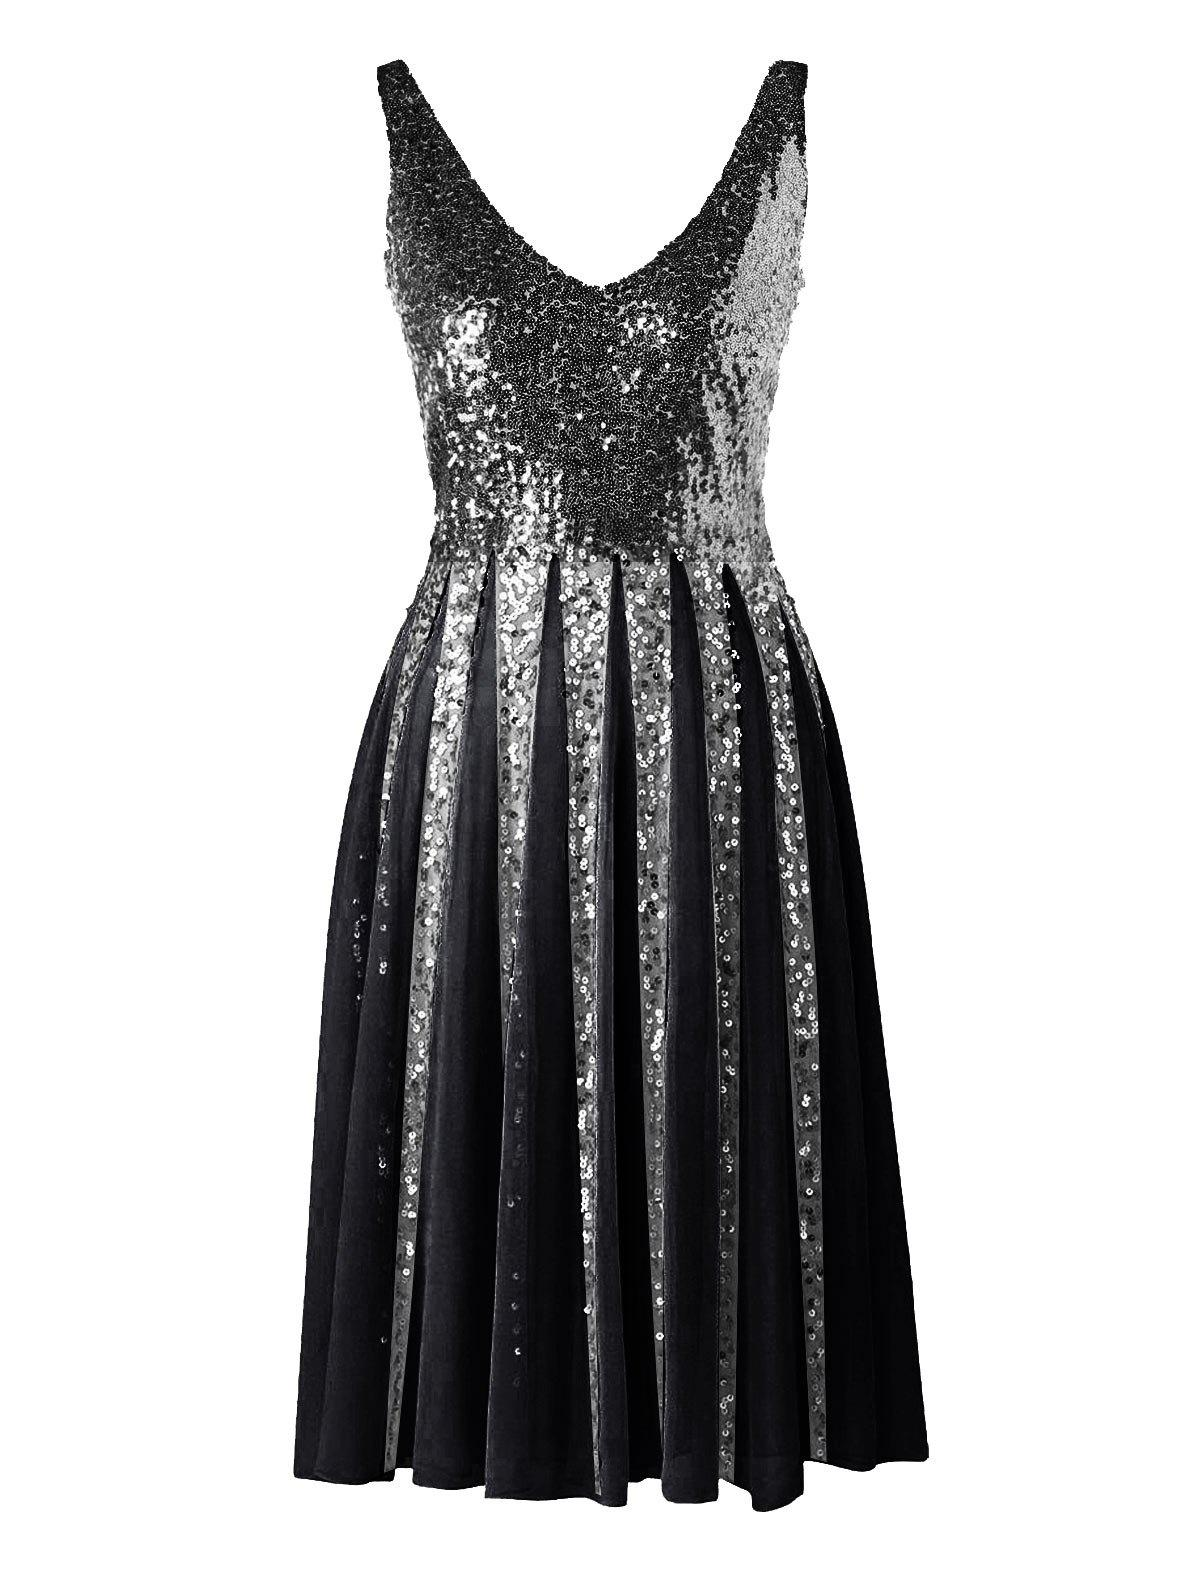 Sequined Sleeveless Chiffon Dress - BLACK L